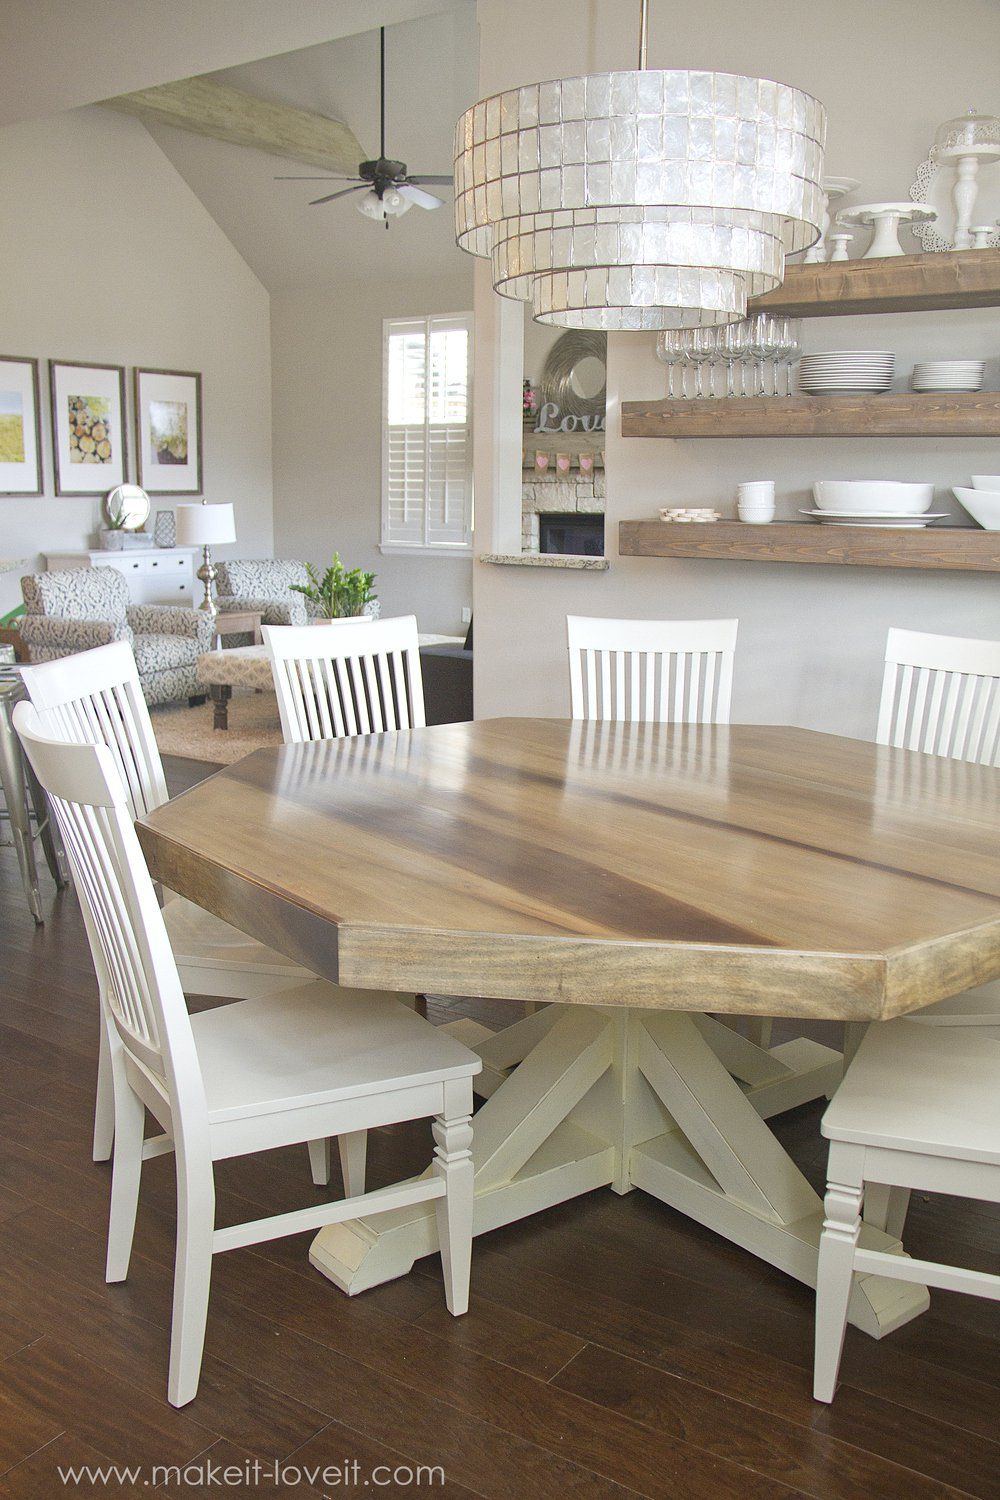 Diy Rustic Dining Room Table diy octagon dining room tablewith a farmhouse base. (seats 8